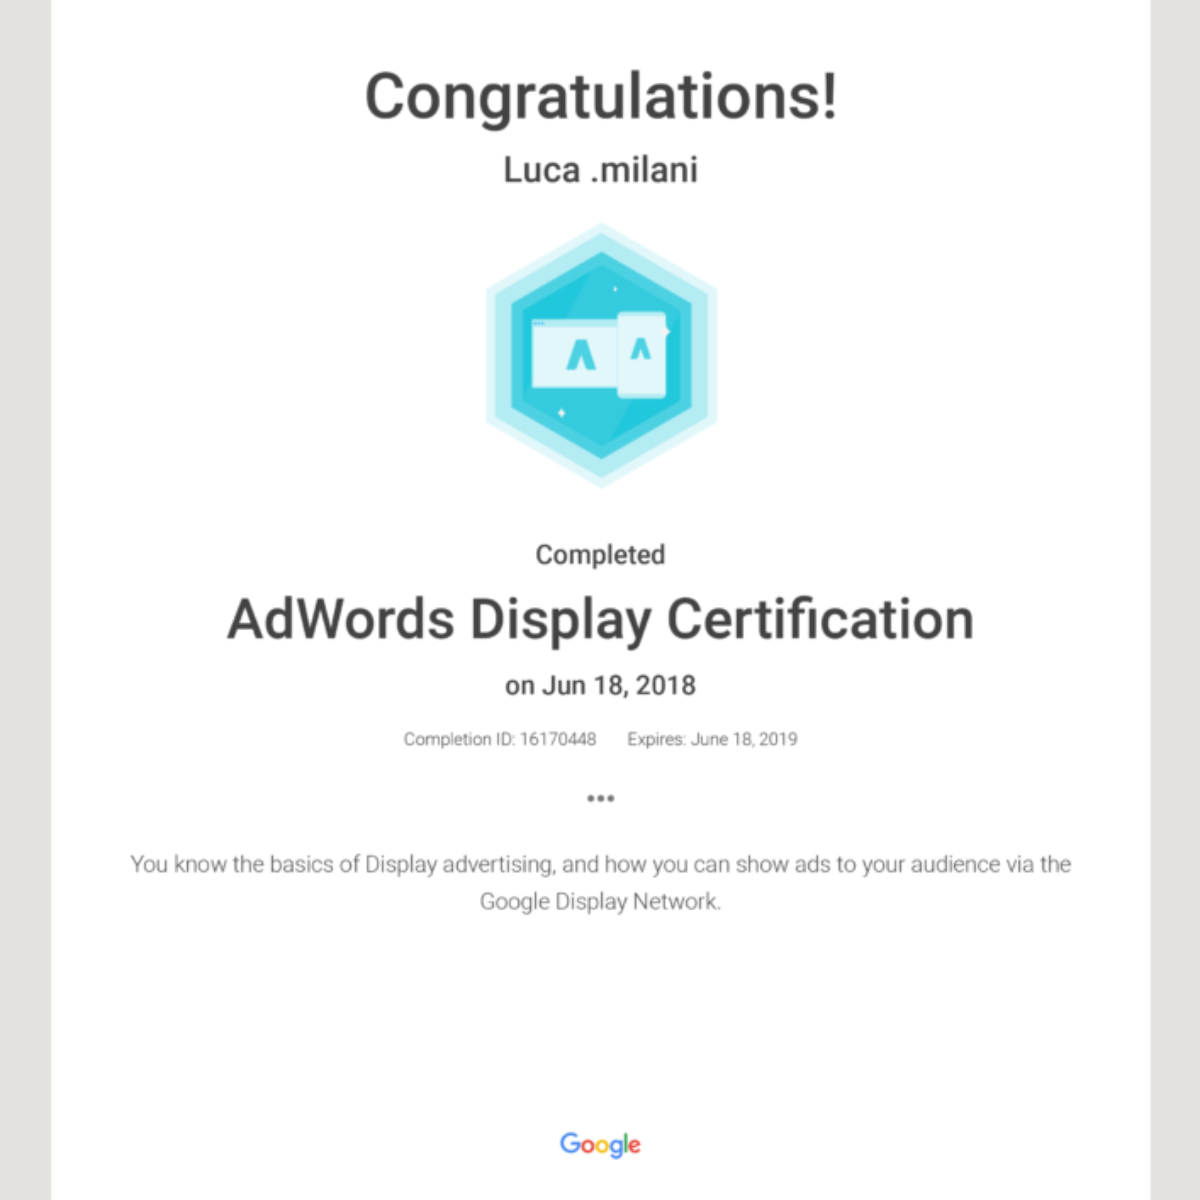 Ad Words Display Certification